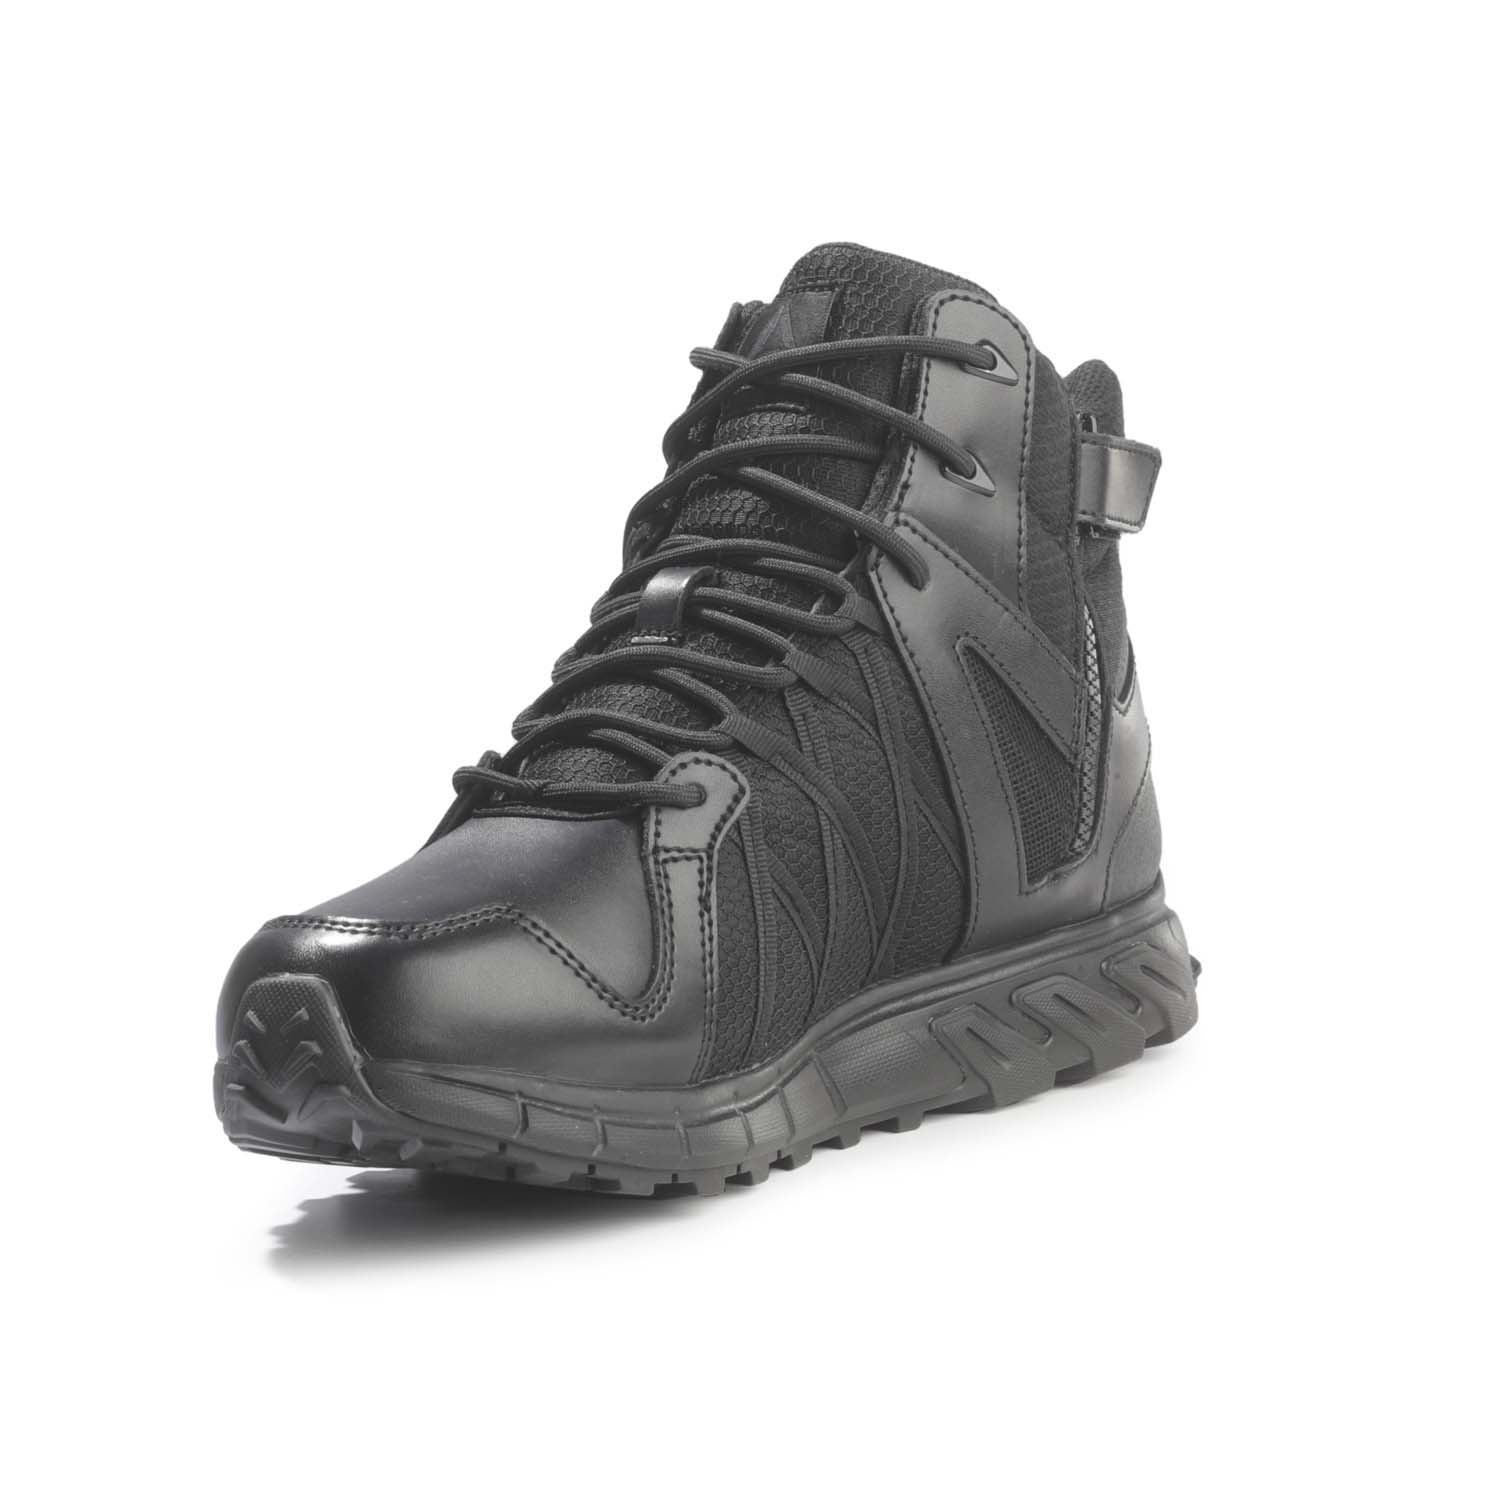 Reebok Work Mens Trailgrip Tactical 6 Inch Casual Work /& Safety Shoes 10.5 Black